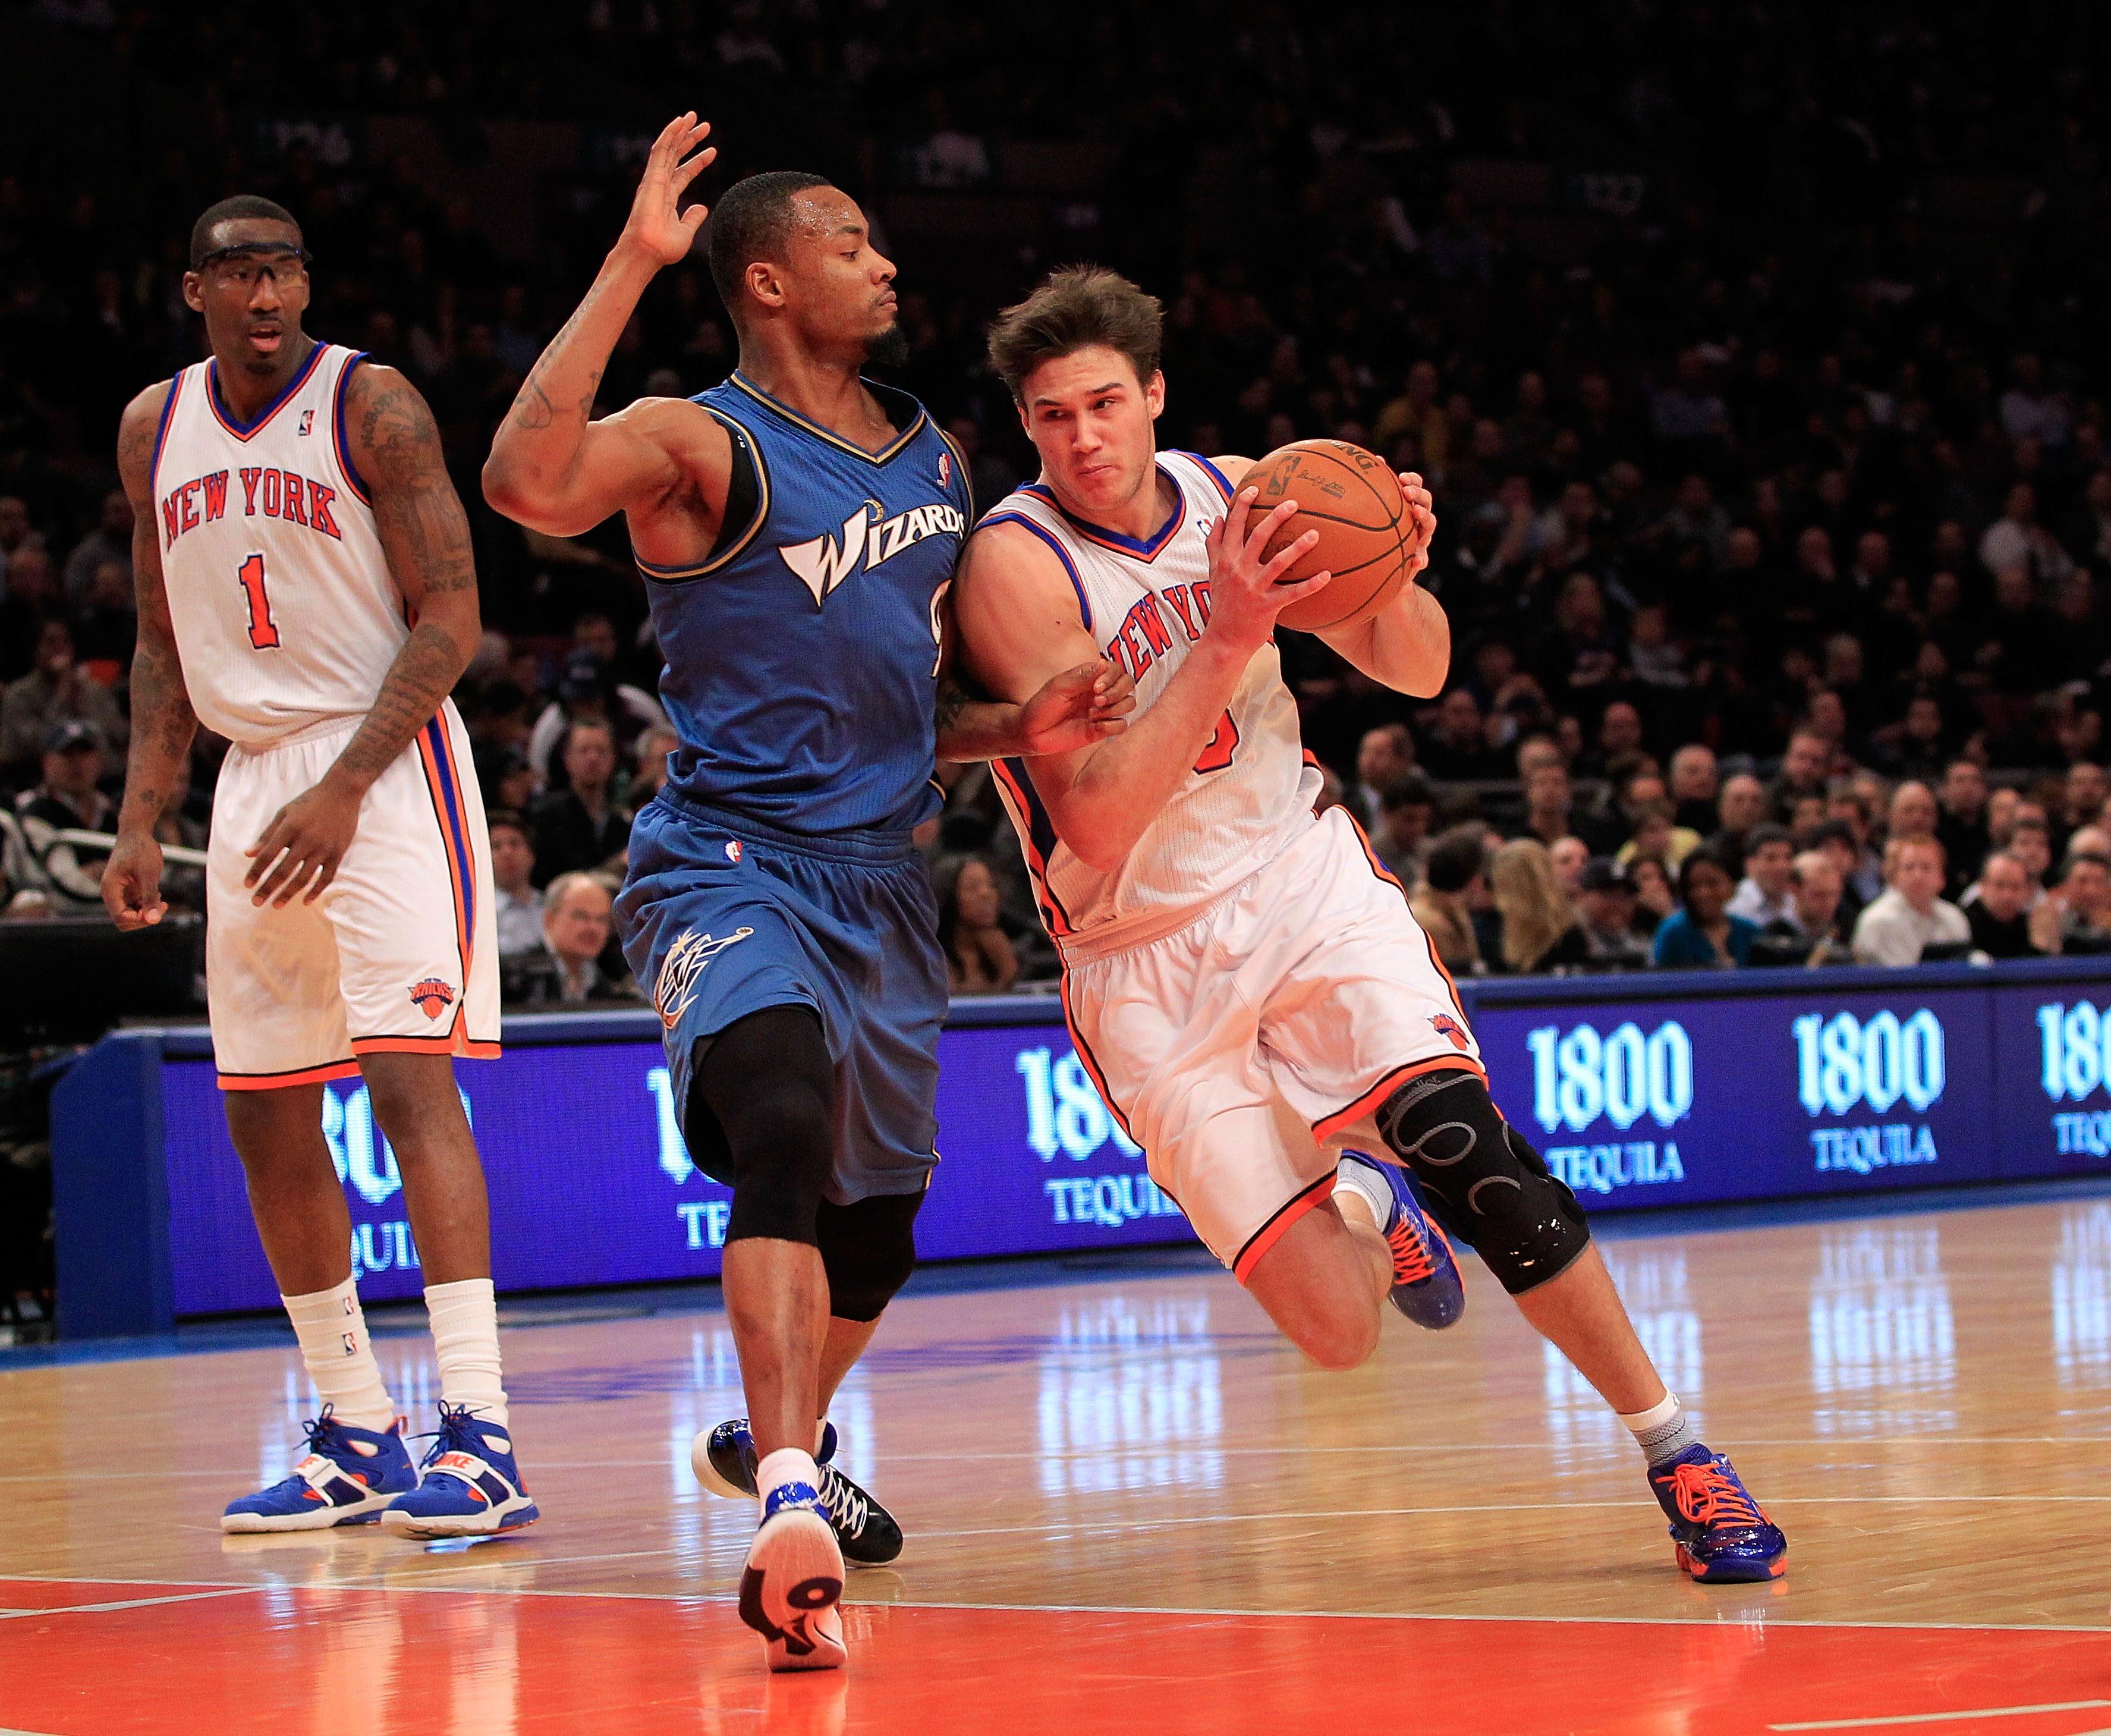 NEW YORK, NY - JANUARY 24: Danilo Gallinari #8 of the New York Knicks drives past Rashard Lewis #9 of the Washington Wizards at Madison Square Garden on January 24, 2011 in New York City. NOTE TO USER: User expressly acknowledges and agrees that, by downl